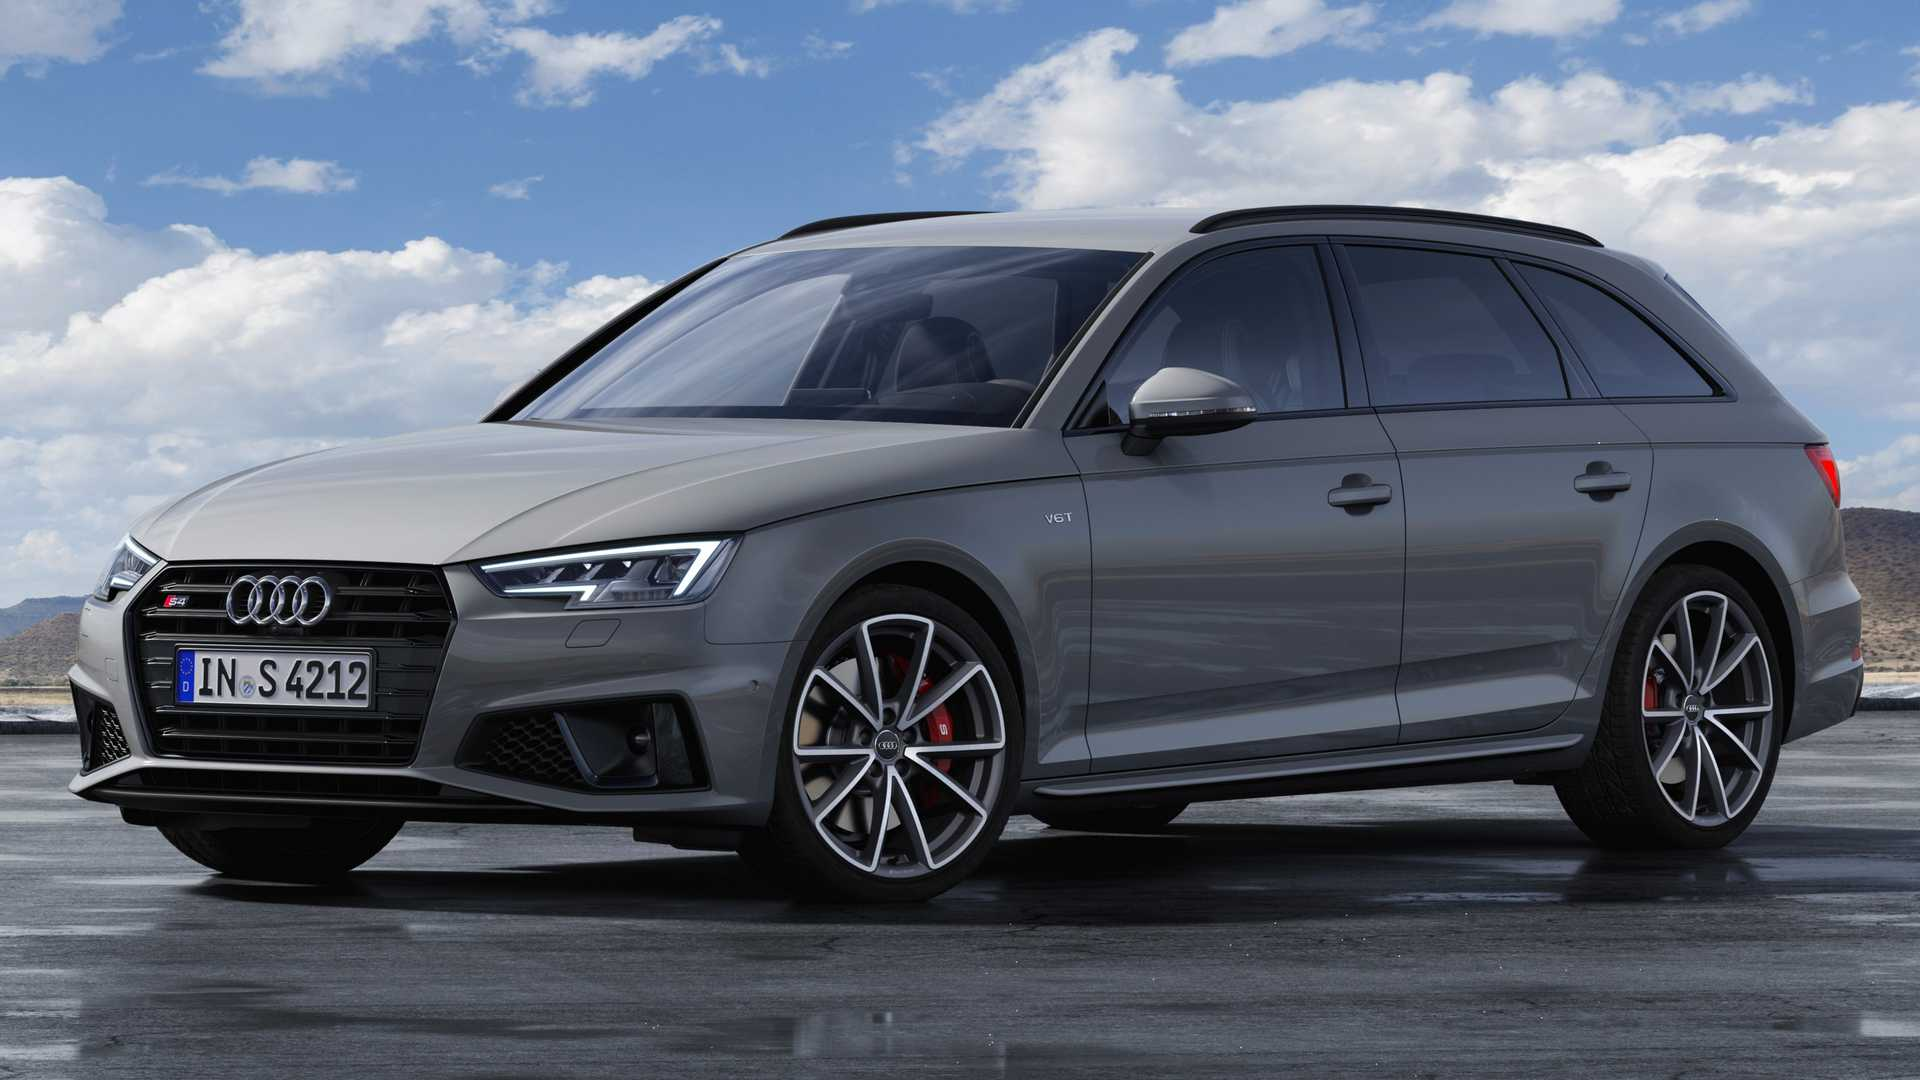 70 All New Audi S4 2020 Review